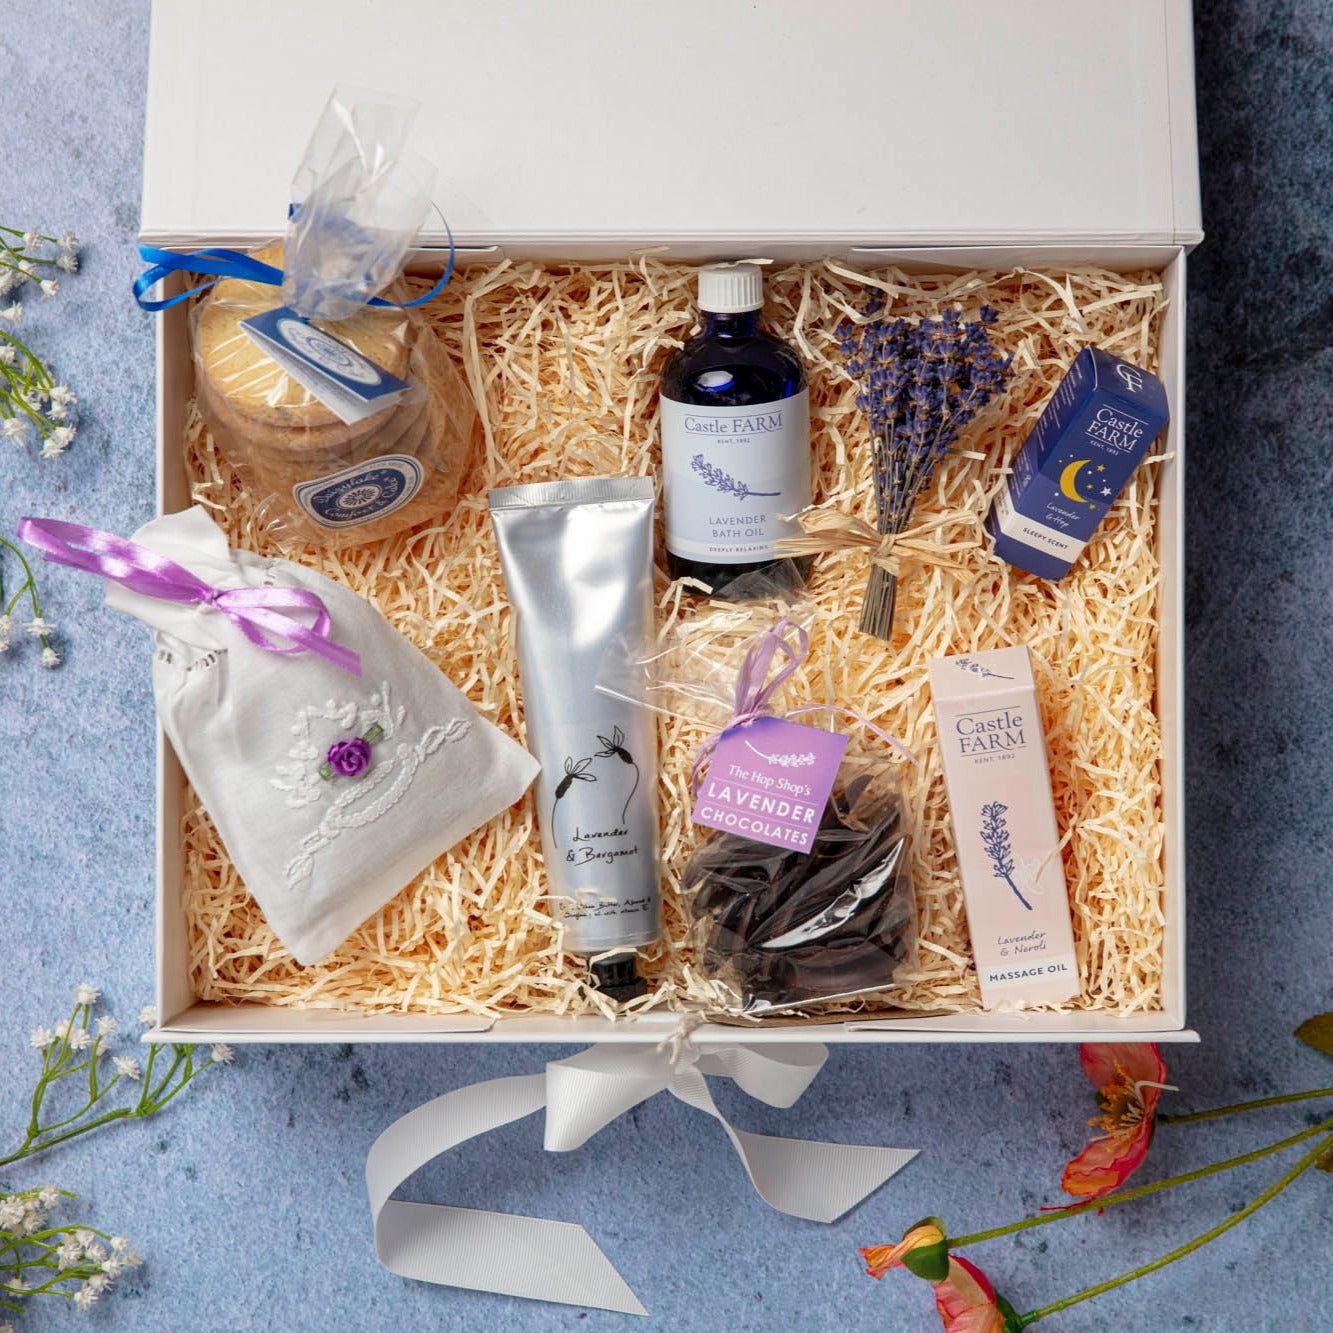 THE LAVENDER PAMPER HAMPER